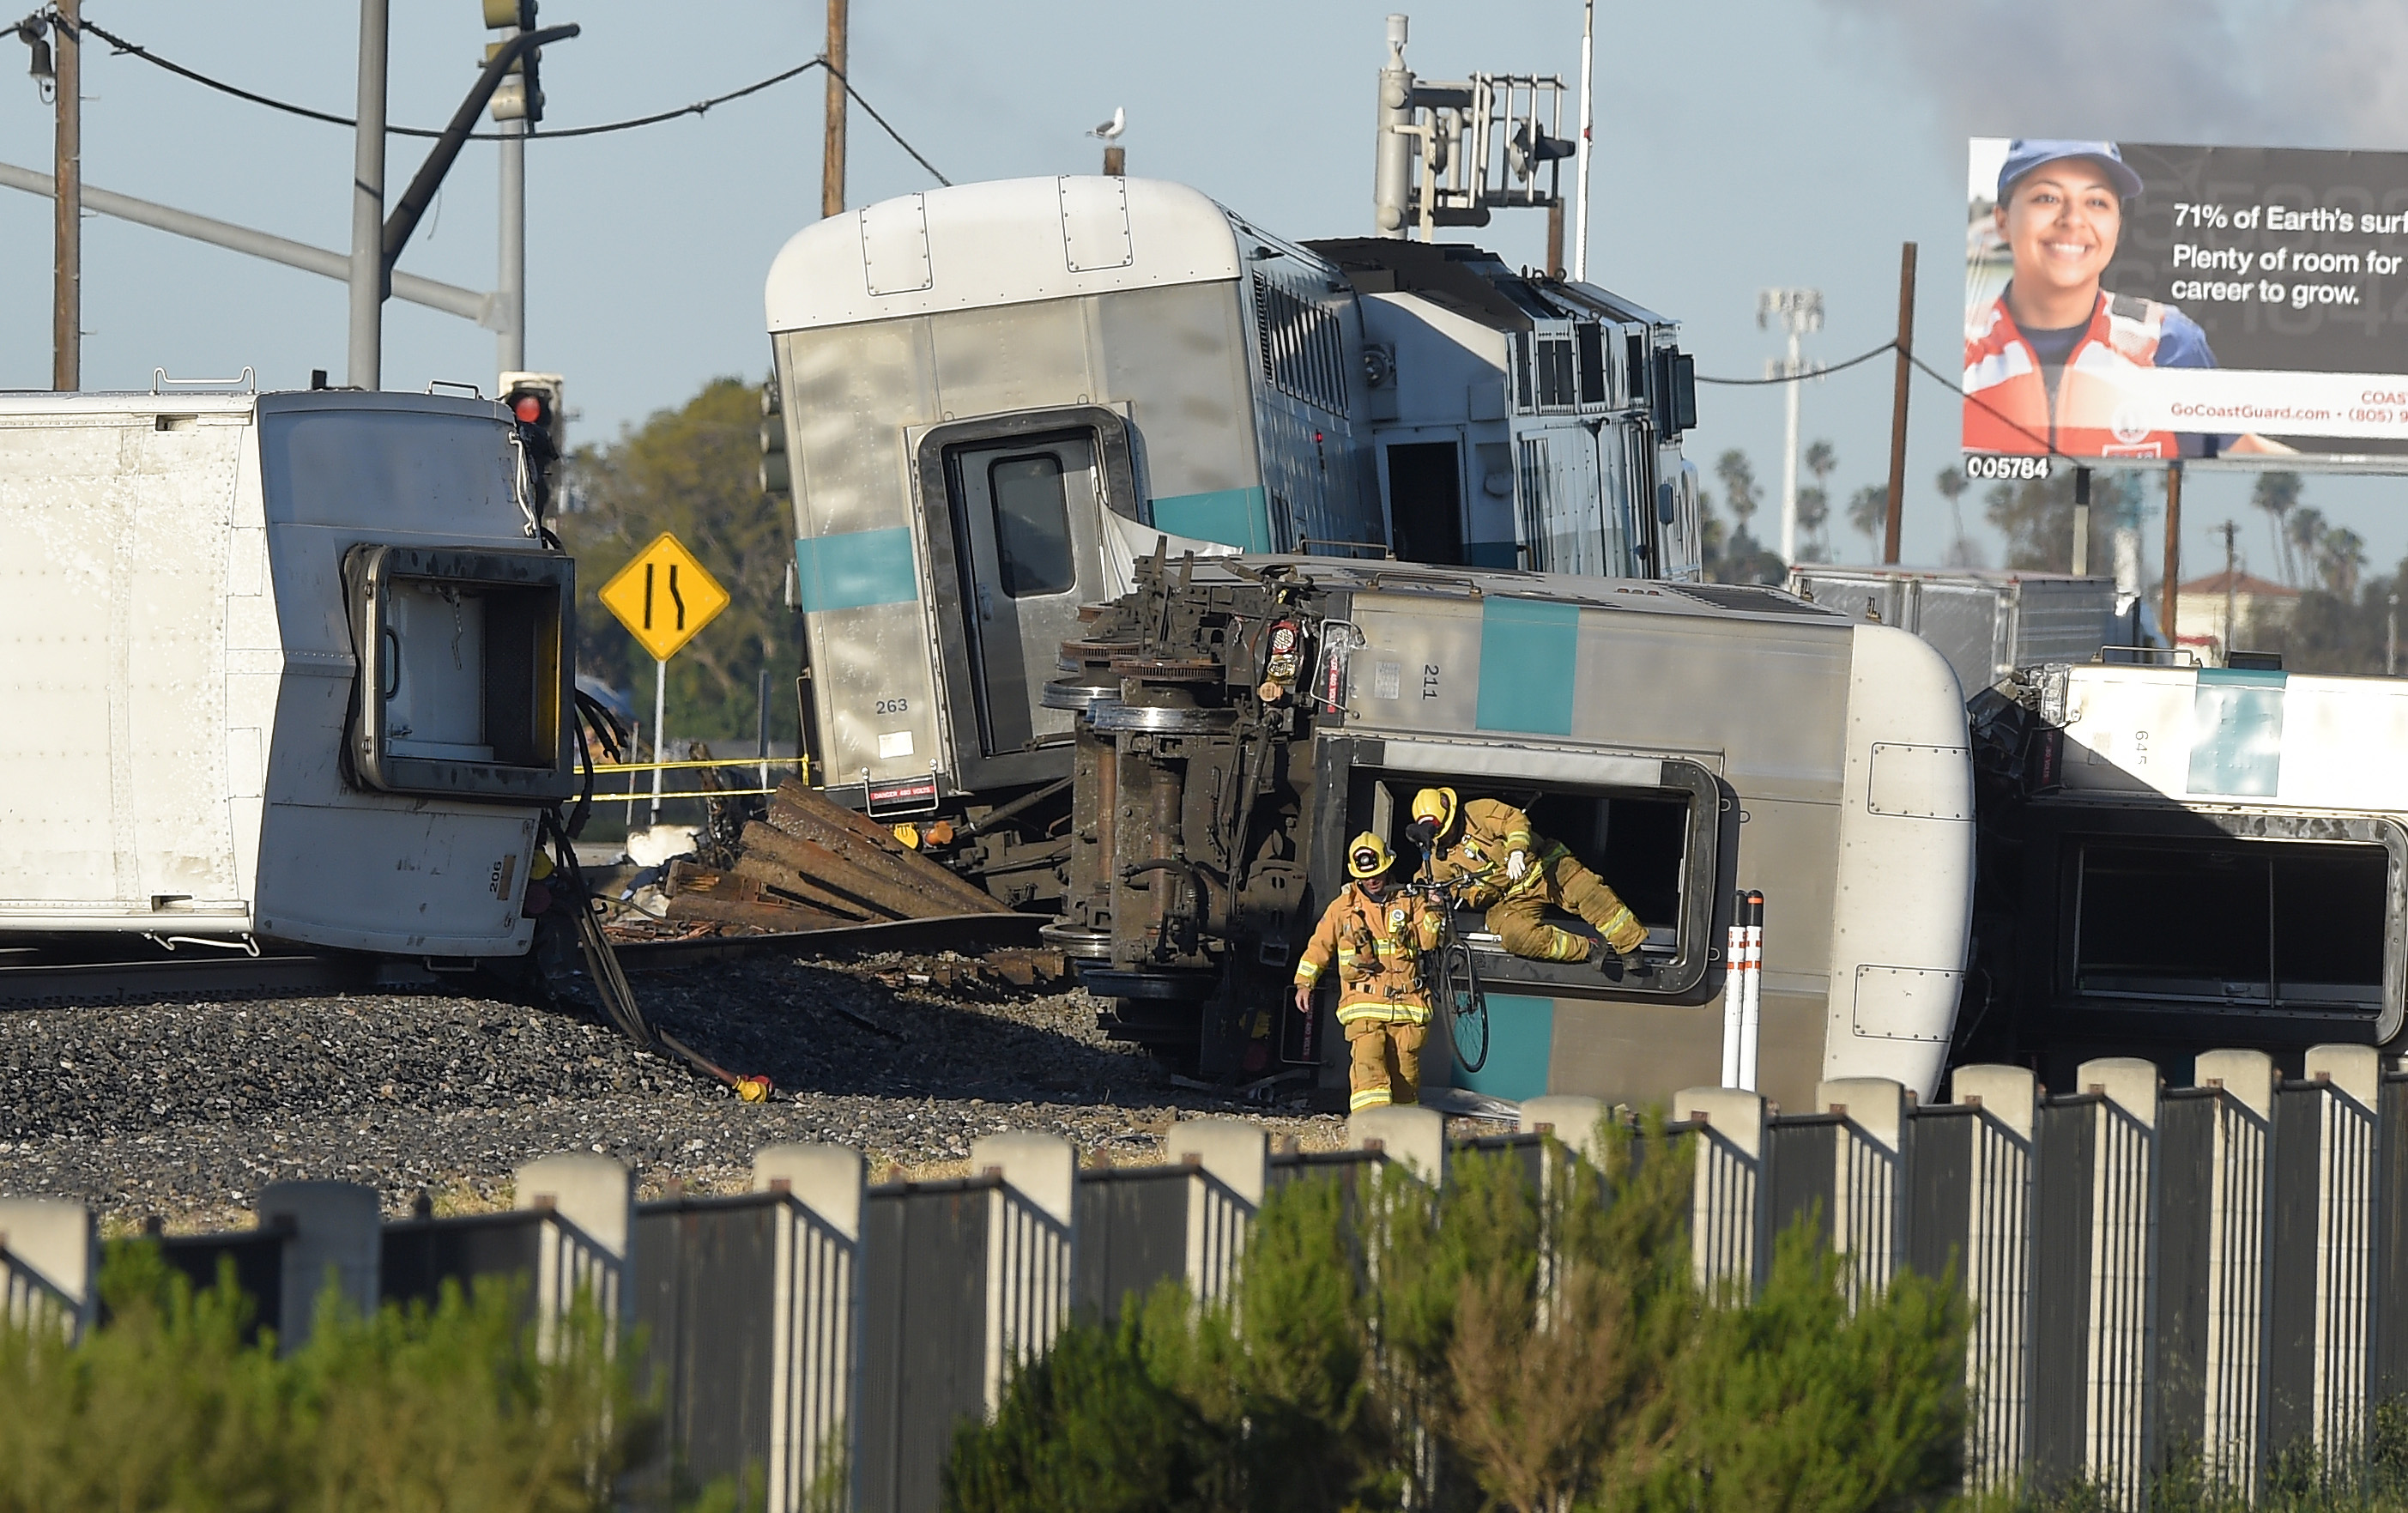 Metrolink train strikes truck in Southern California The